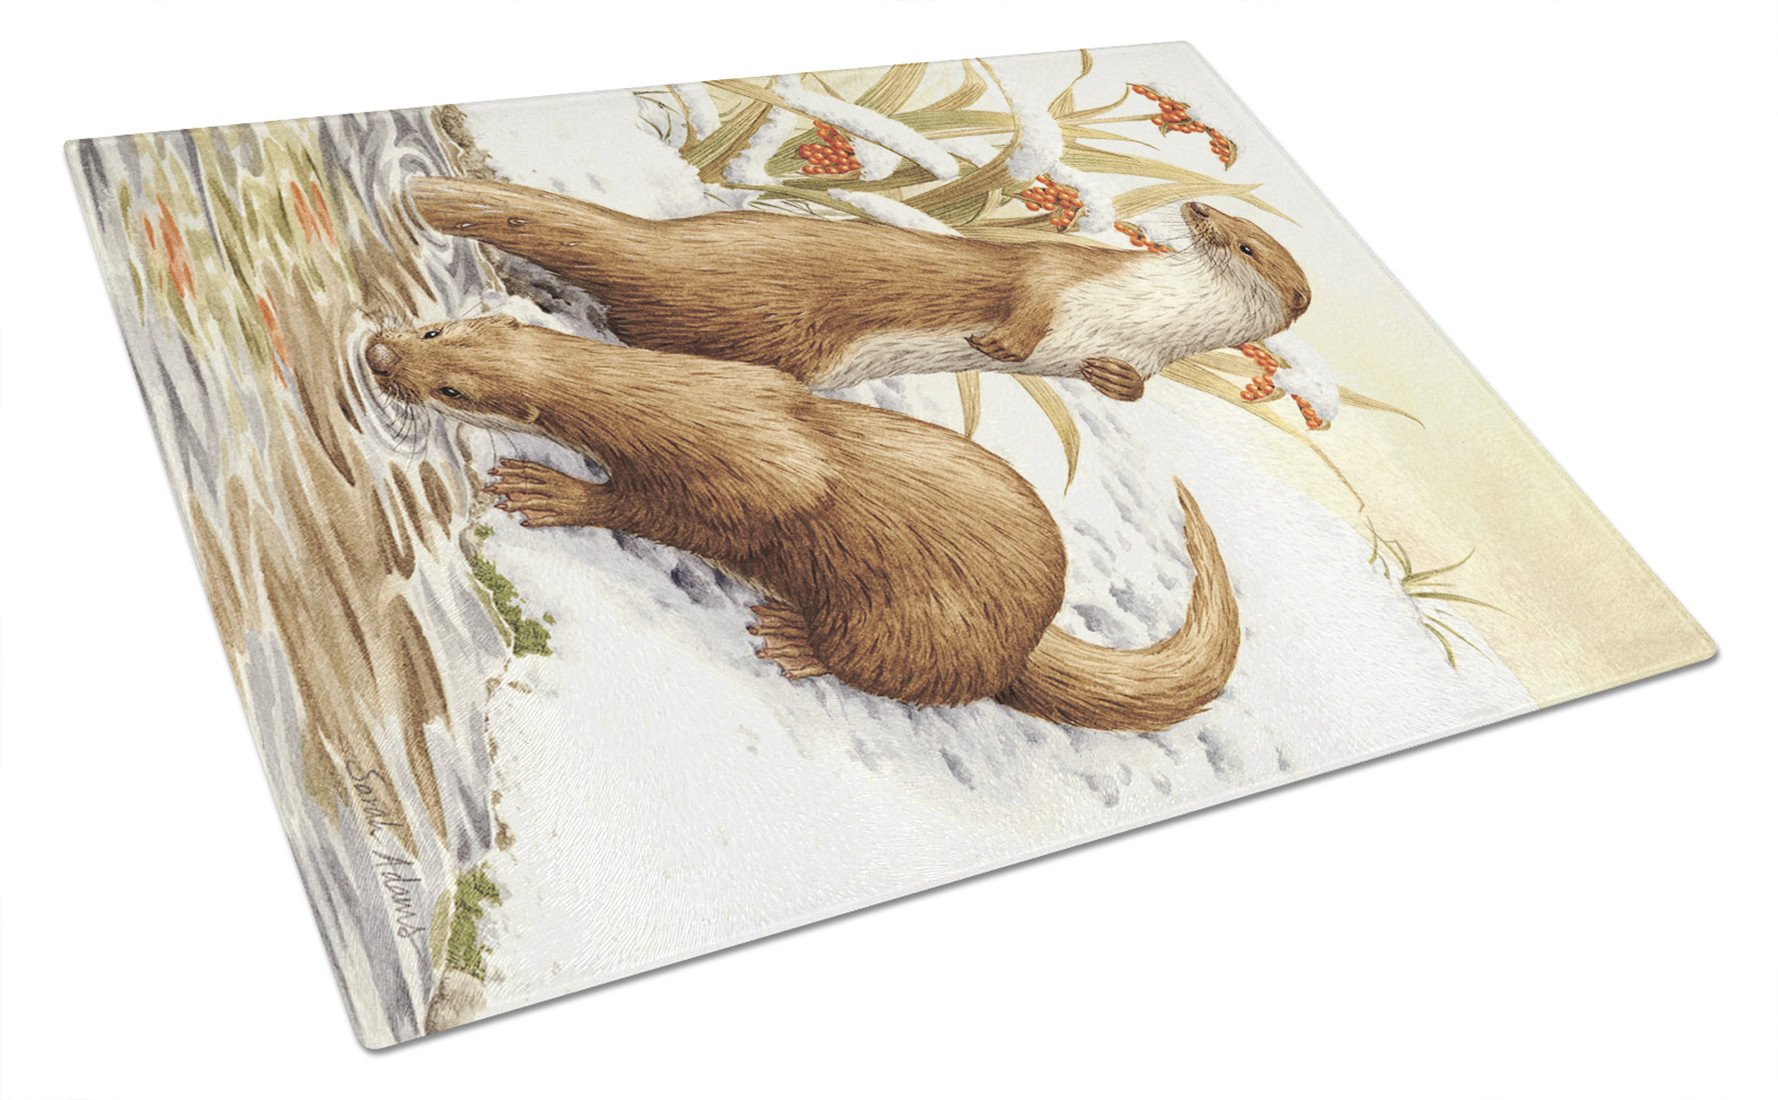 Otters & Gladon Irises Glass Cutting Board Large ASA2005LCB by Caroline's Treasures